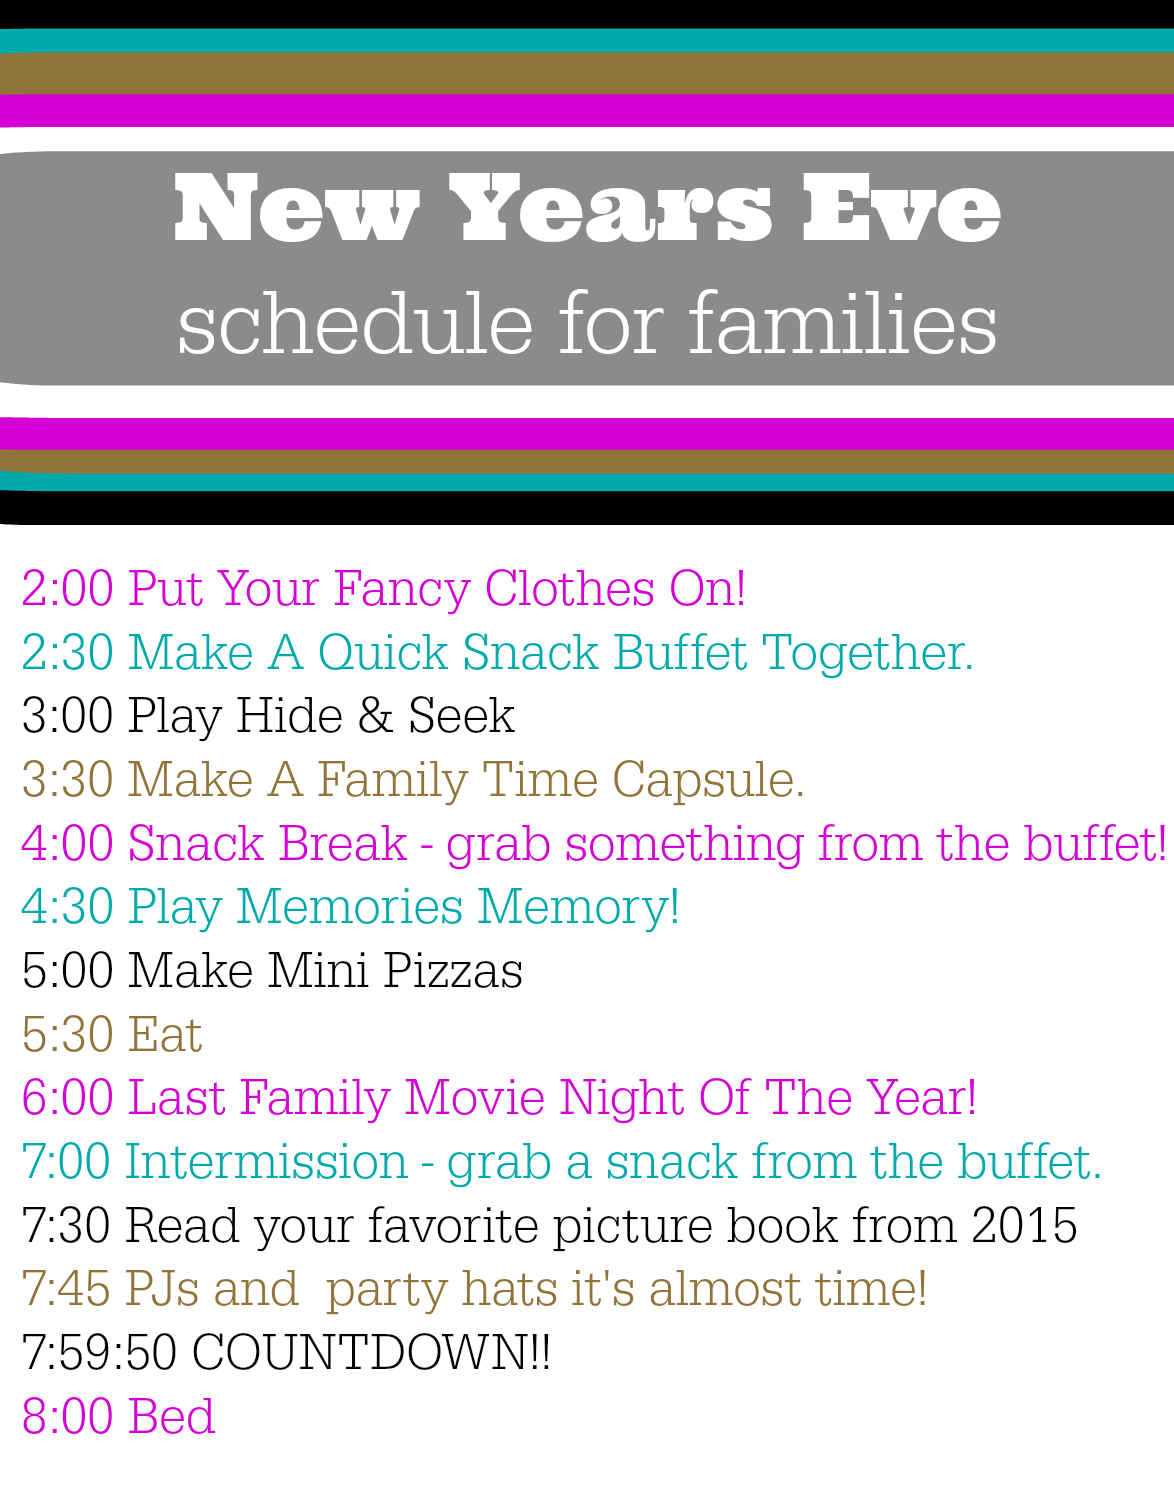 New Years Eve Schedule - Free Printable - No Time For Flash Cards